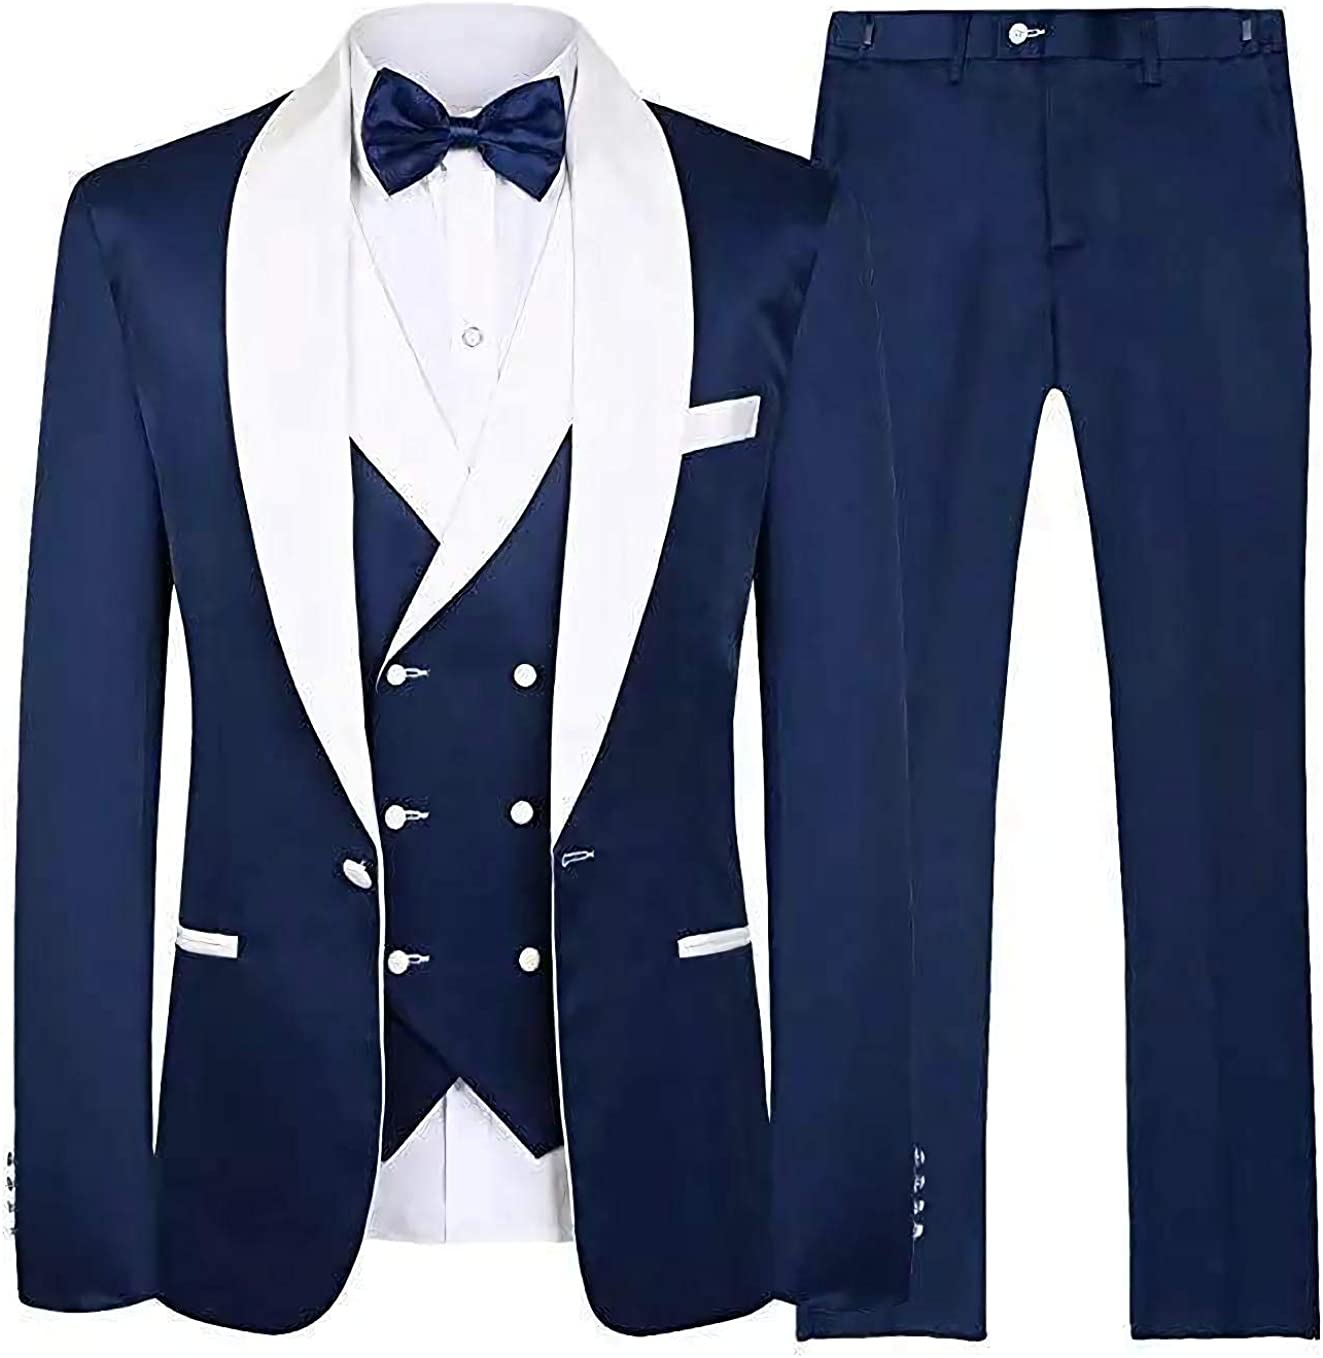 Onlylover Three Piece Men's Suit Navy Blue Groom Tuxedos White Shawl Lapel Men Suits with Pants Wedding Business Suit(Navy Blue,46 chest/40 Waist)